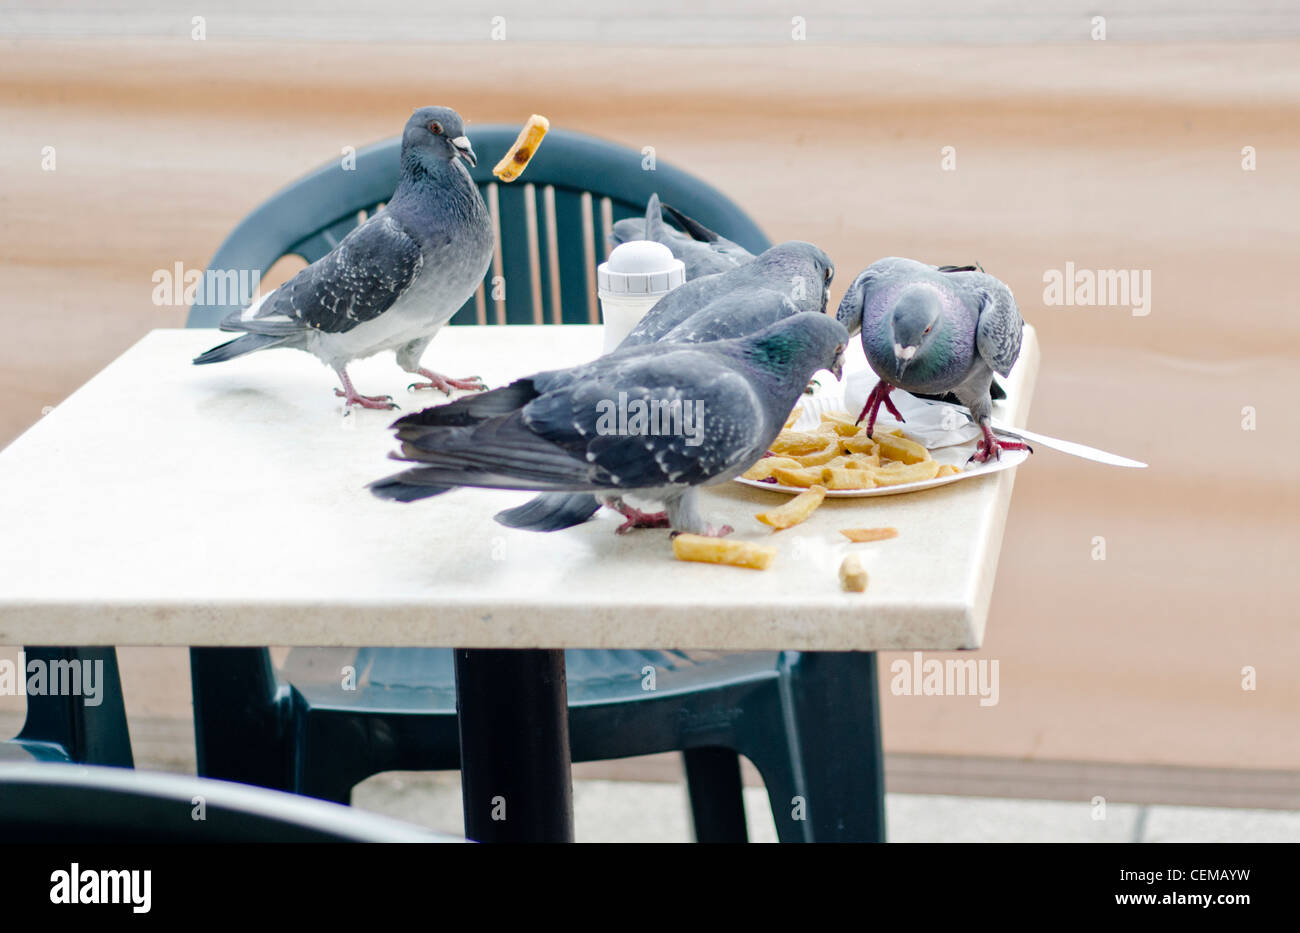 Pigeons scavenging leftover chips and other food from a table outside a cafe in the UK. - Stock Image